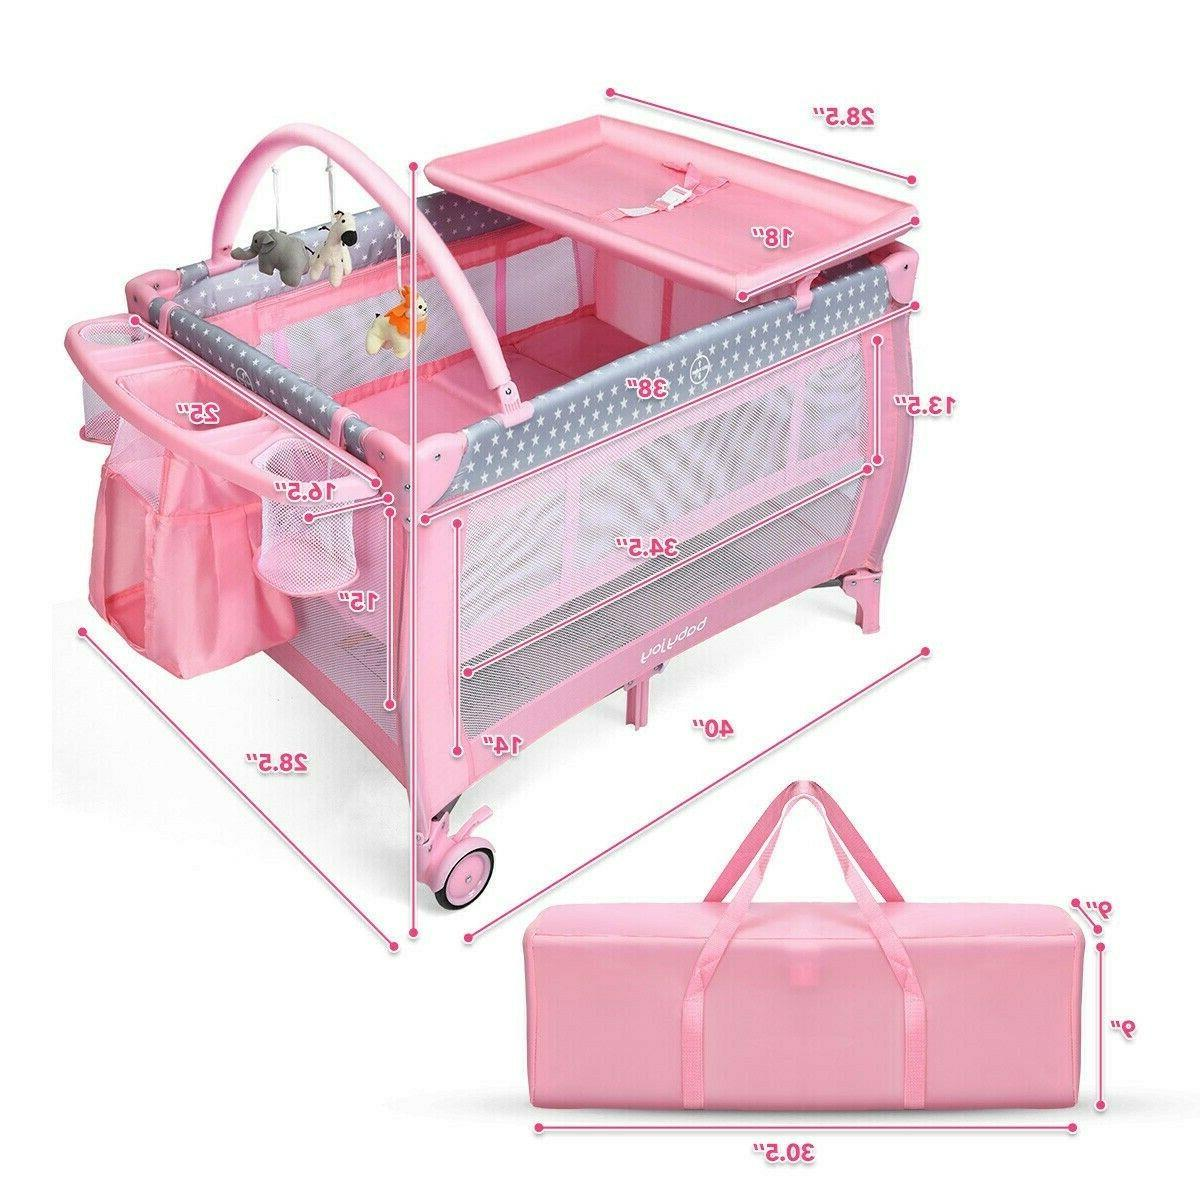 Pink Baby Crib Foldable Portable Infant Playard Changing Table Play Center